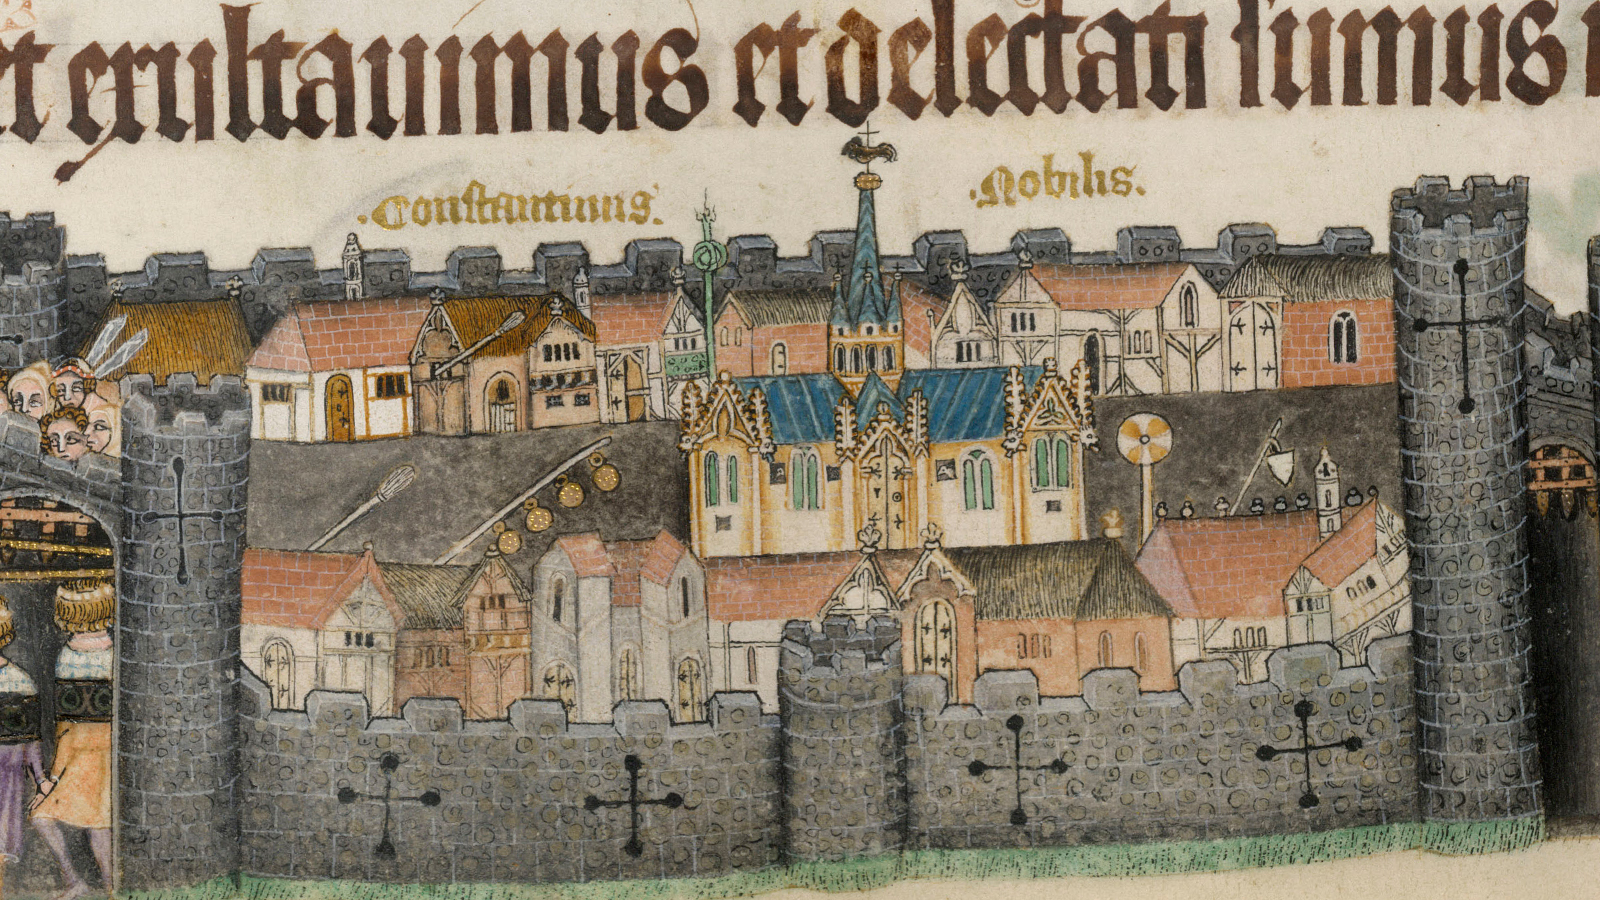 Inside the walls: exploring towns in the Middle Ages